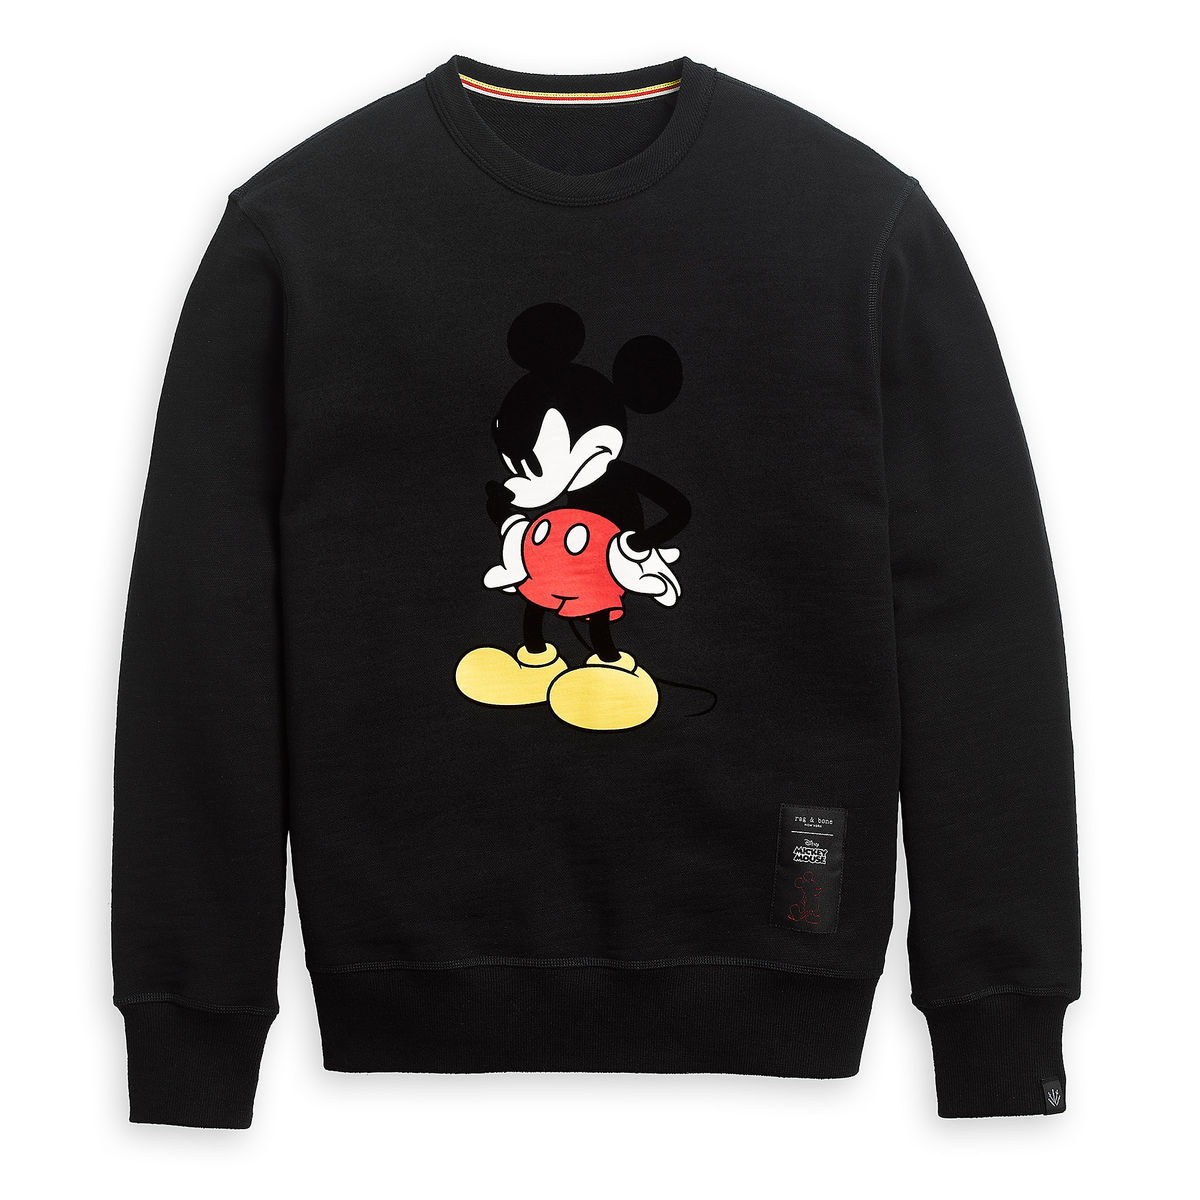 Mickey Mouse Sweatshirt for Adults by rag & bone